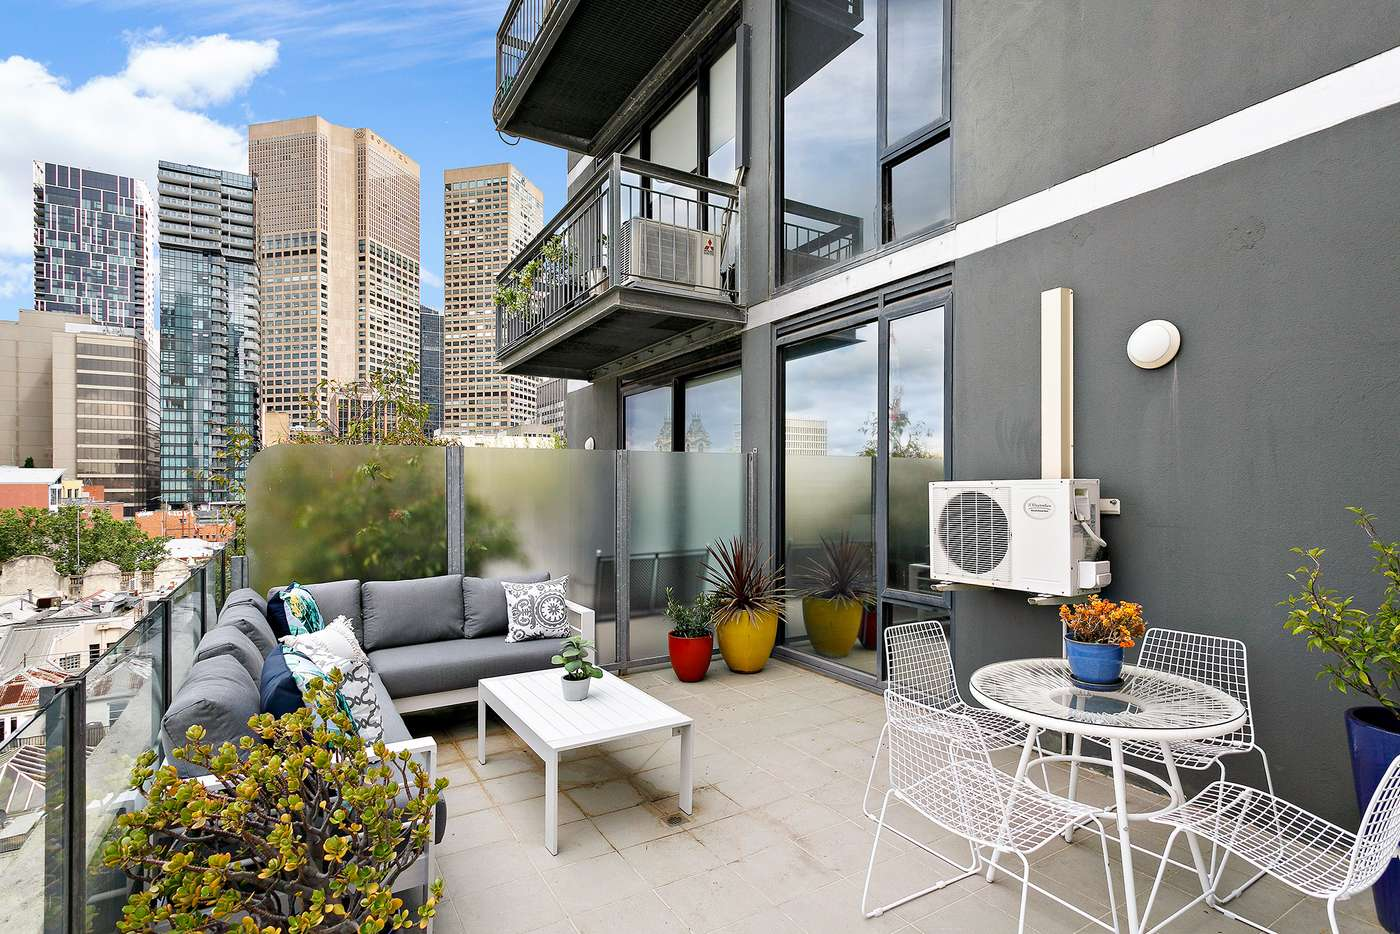 Main view of Homely apartment listing, 705/16 Liverpool Street, Melbourne VIC 3000